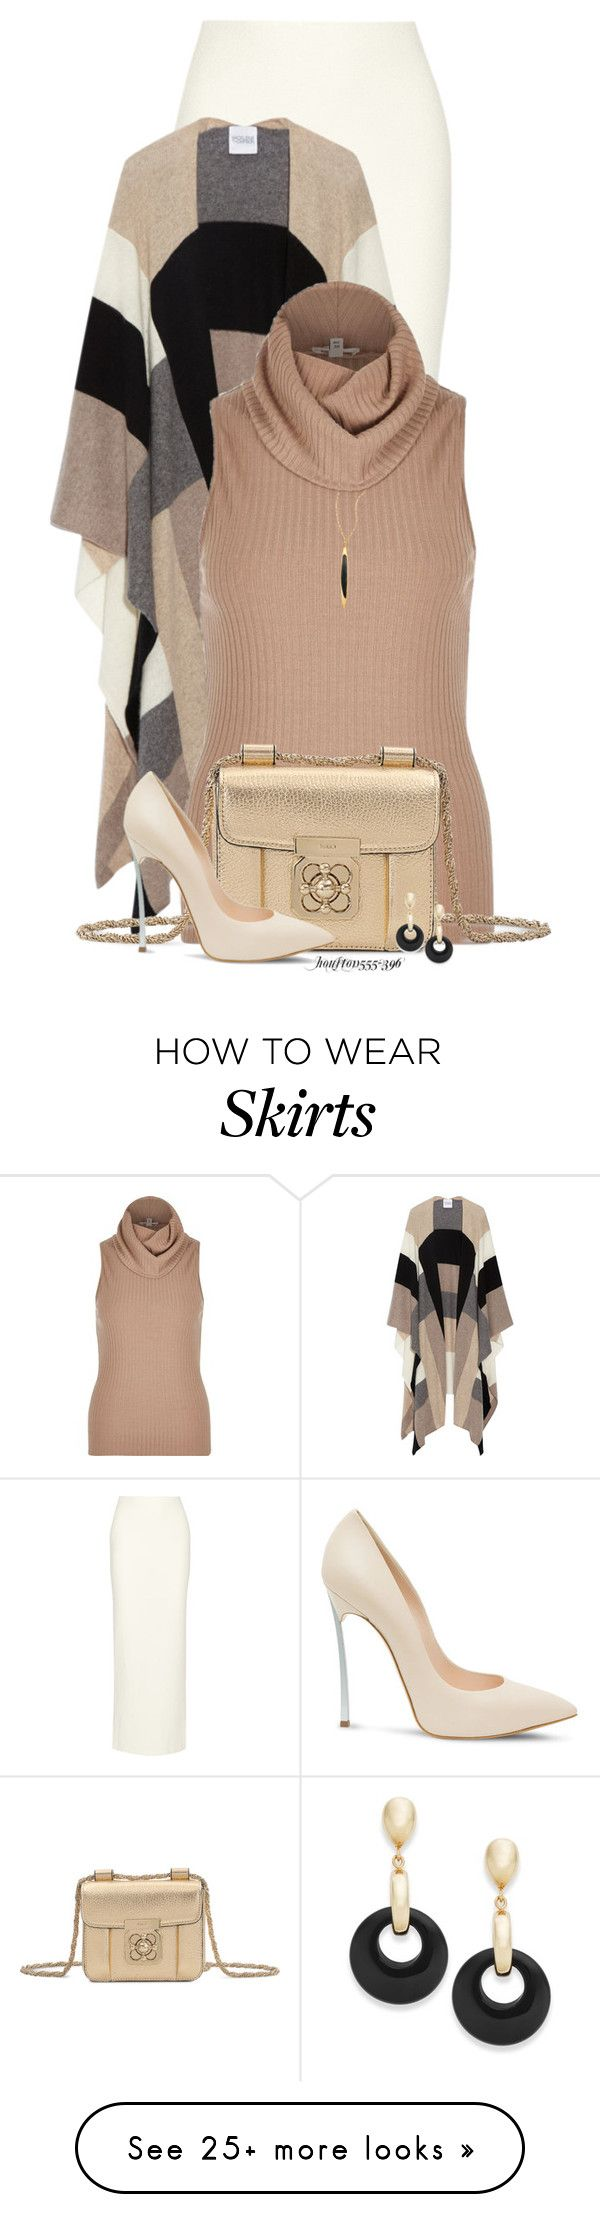 """""""Maxi Skirt for Fall"""" by houston555-396 on Polyvore featuring Alice + Olivia, Madeleine Thompson, River Island, Chloé, Casadei, Lana and Signature Gold"""